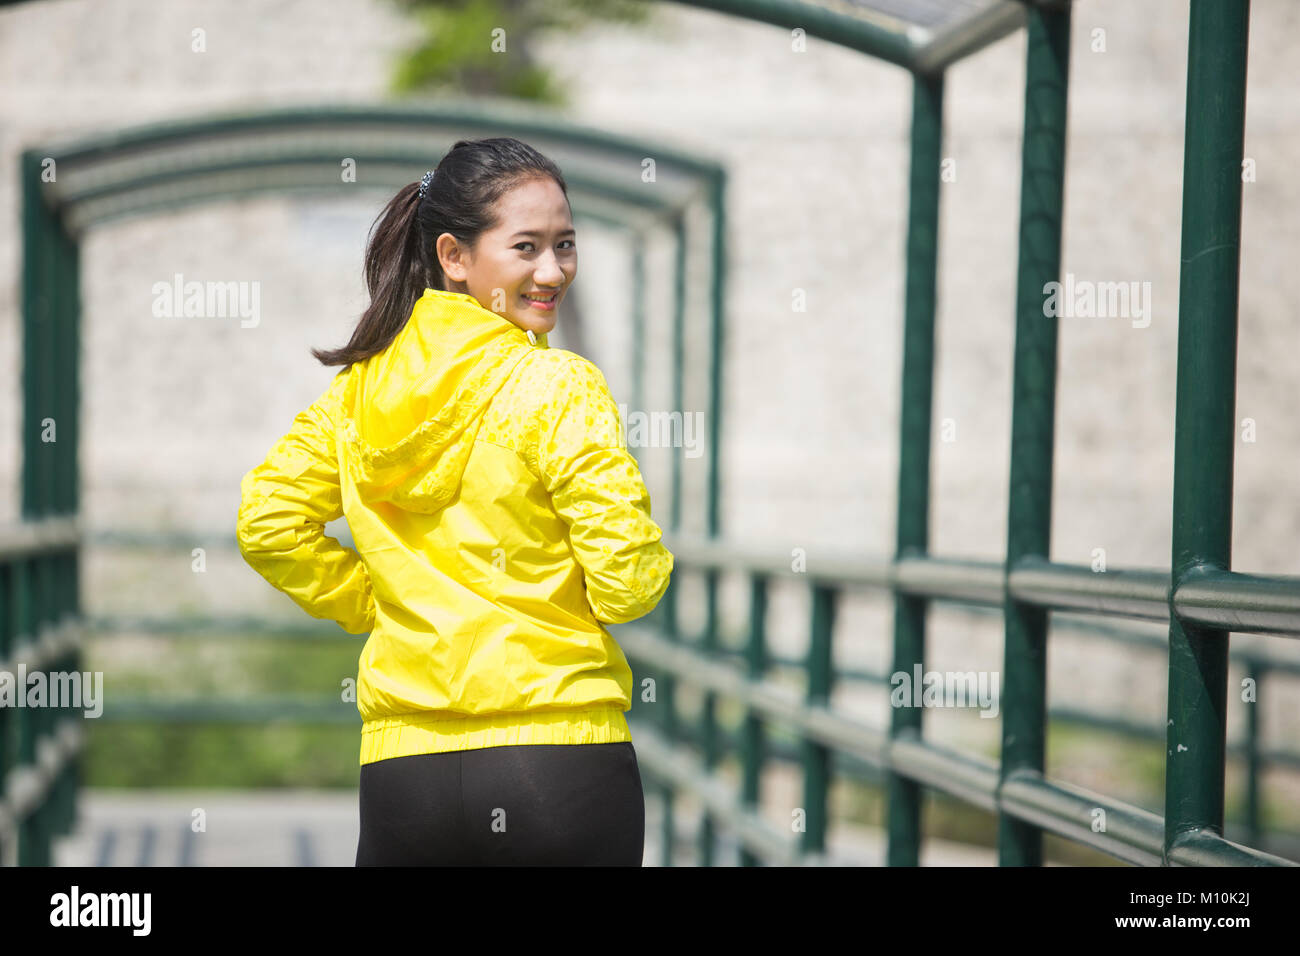 A portrait of a young asian woman exercising outdoor in yellow neon jacket Stock Photo